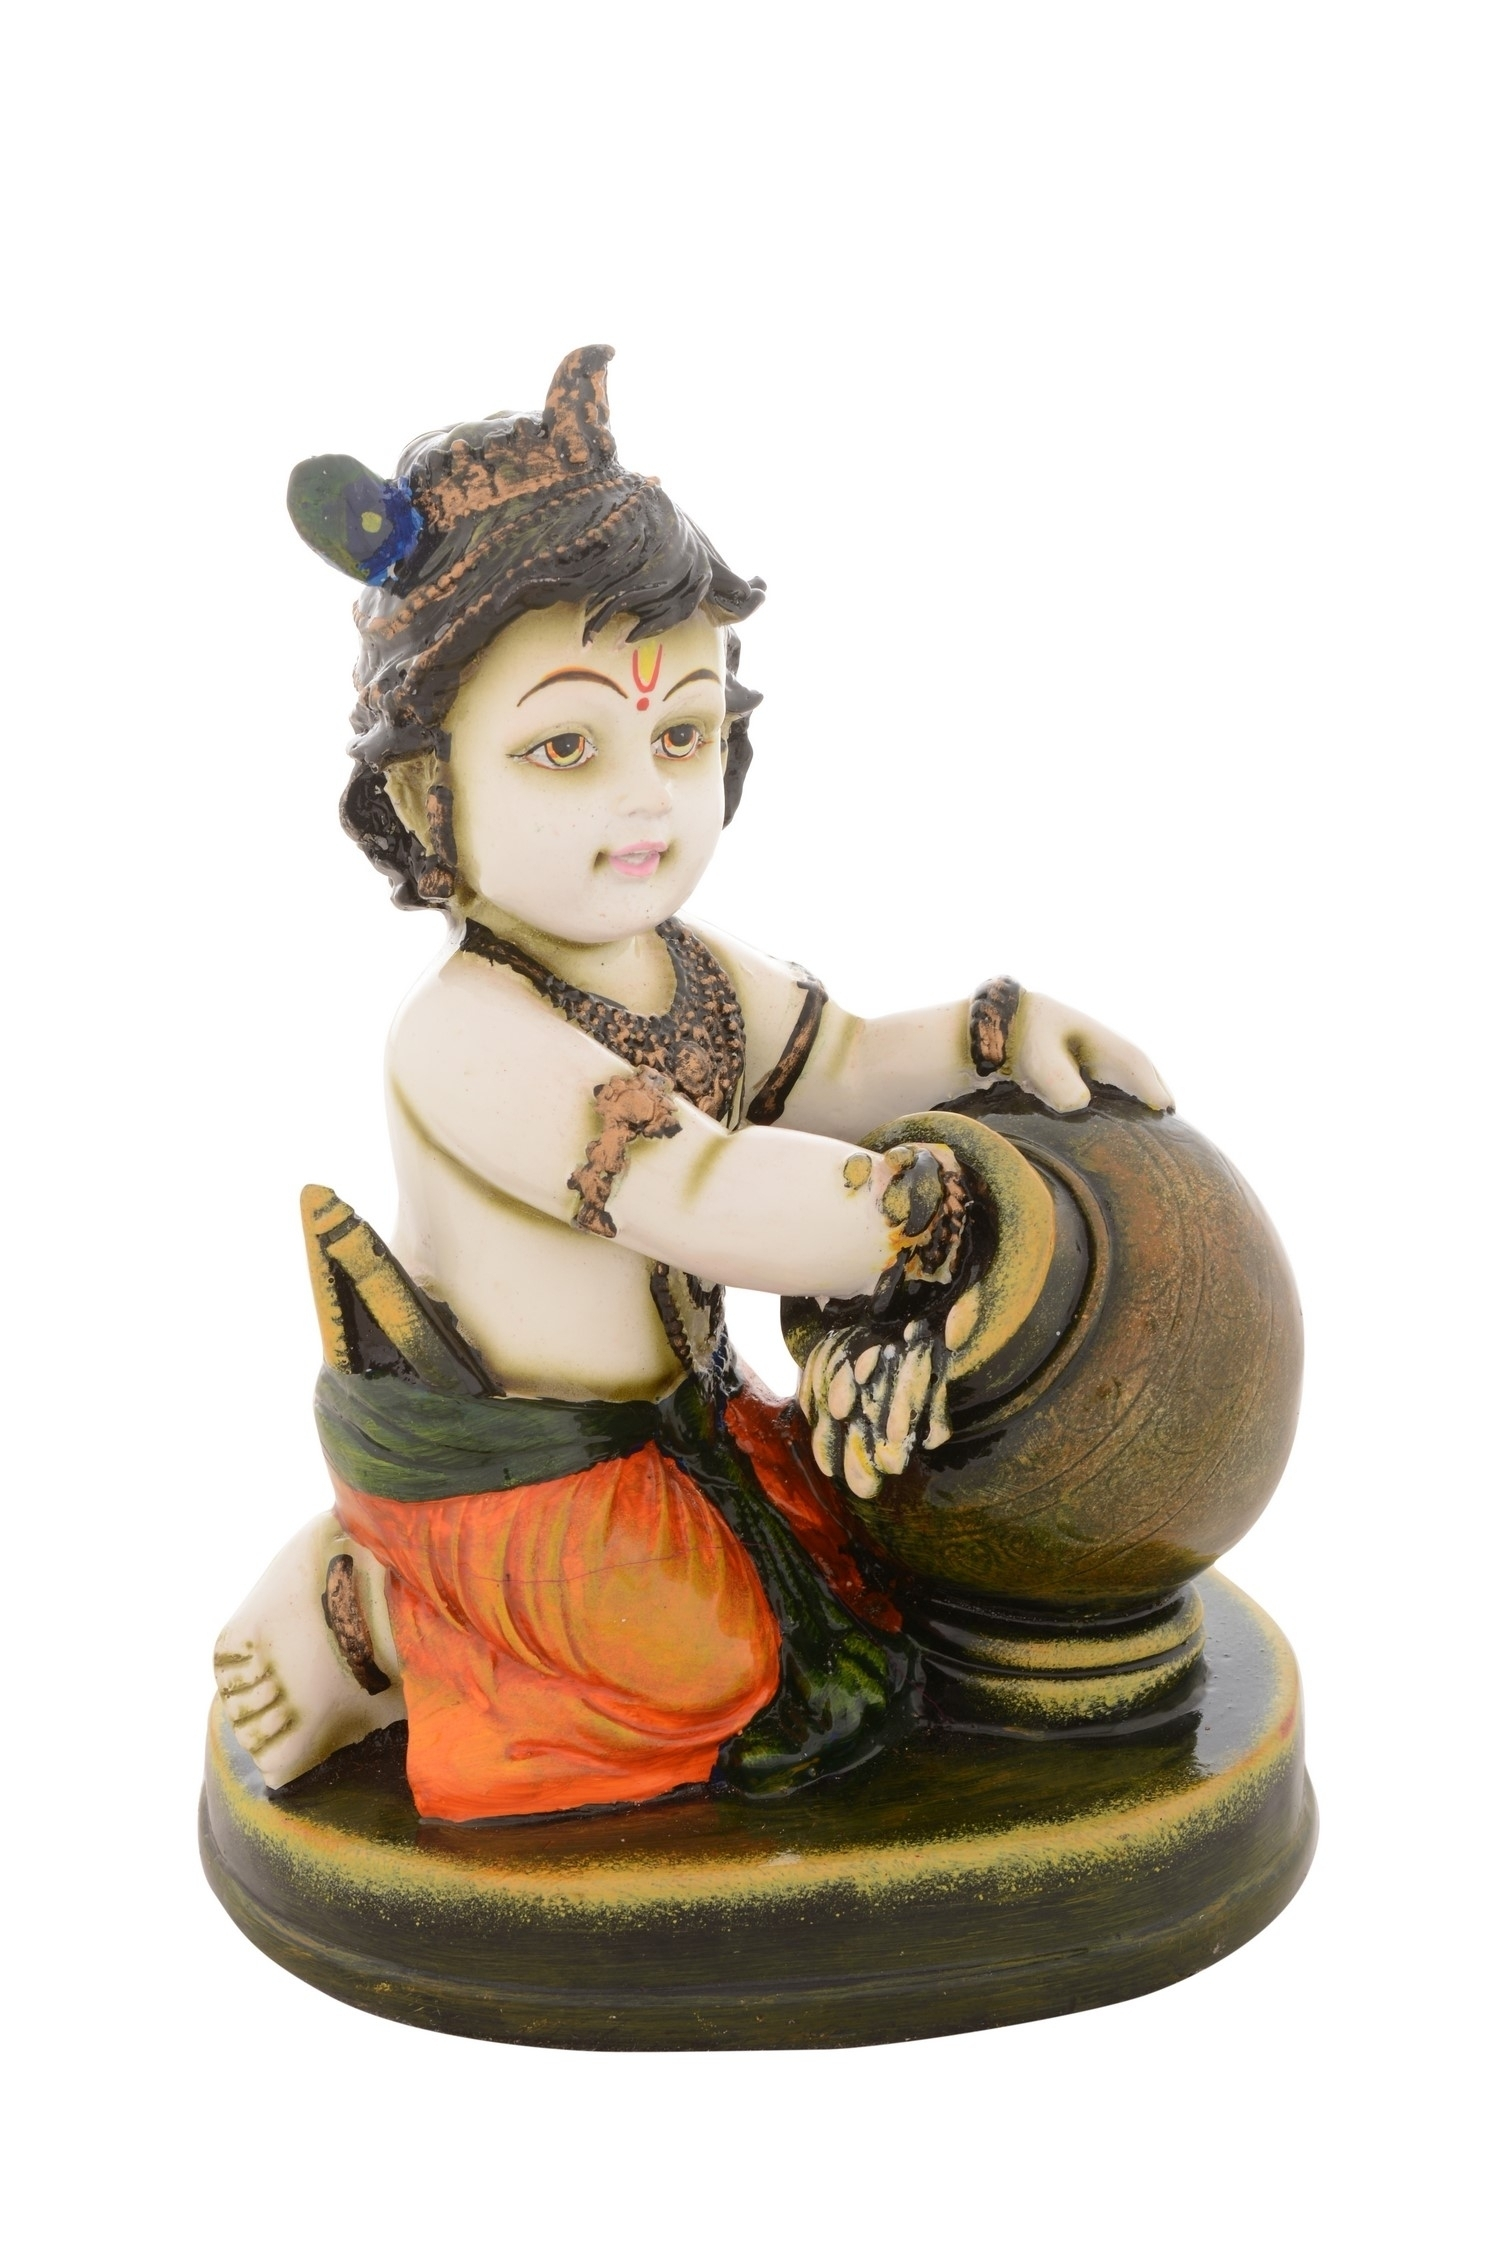 Premium Figurine of Laddu Gopal Indian Home Decor